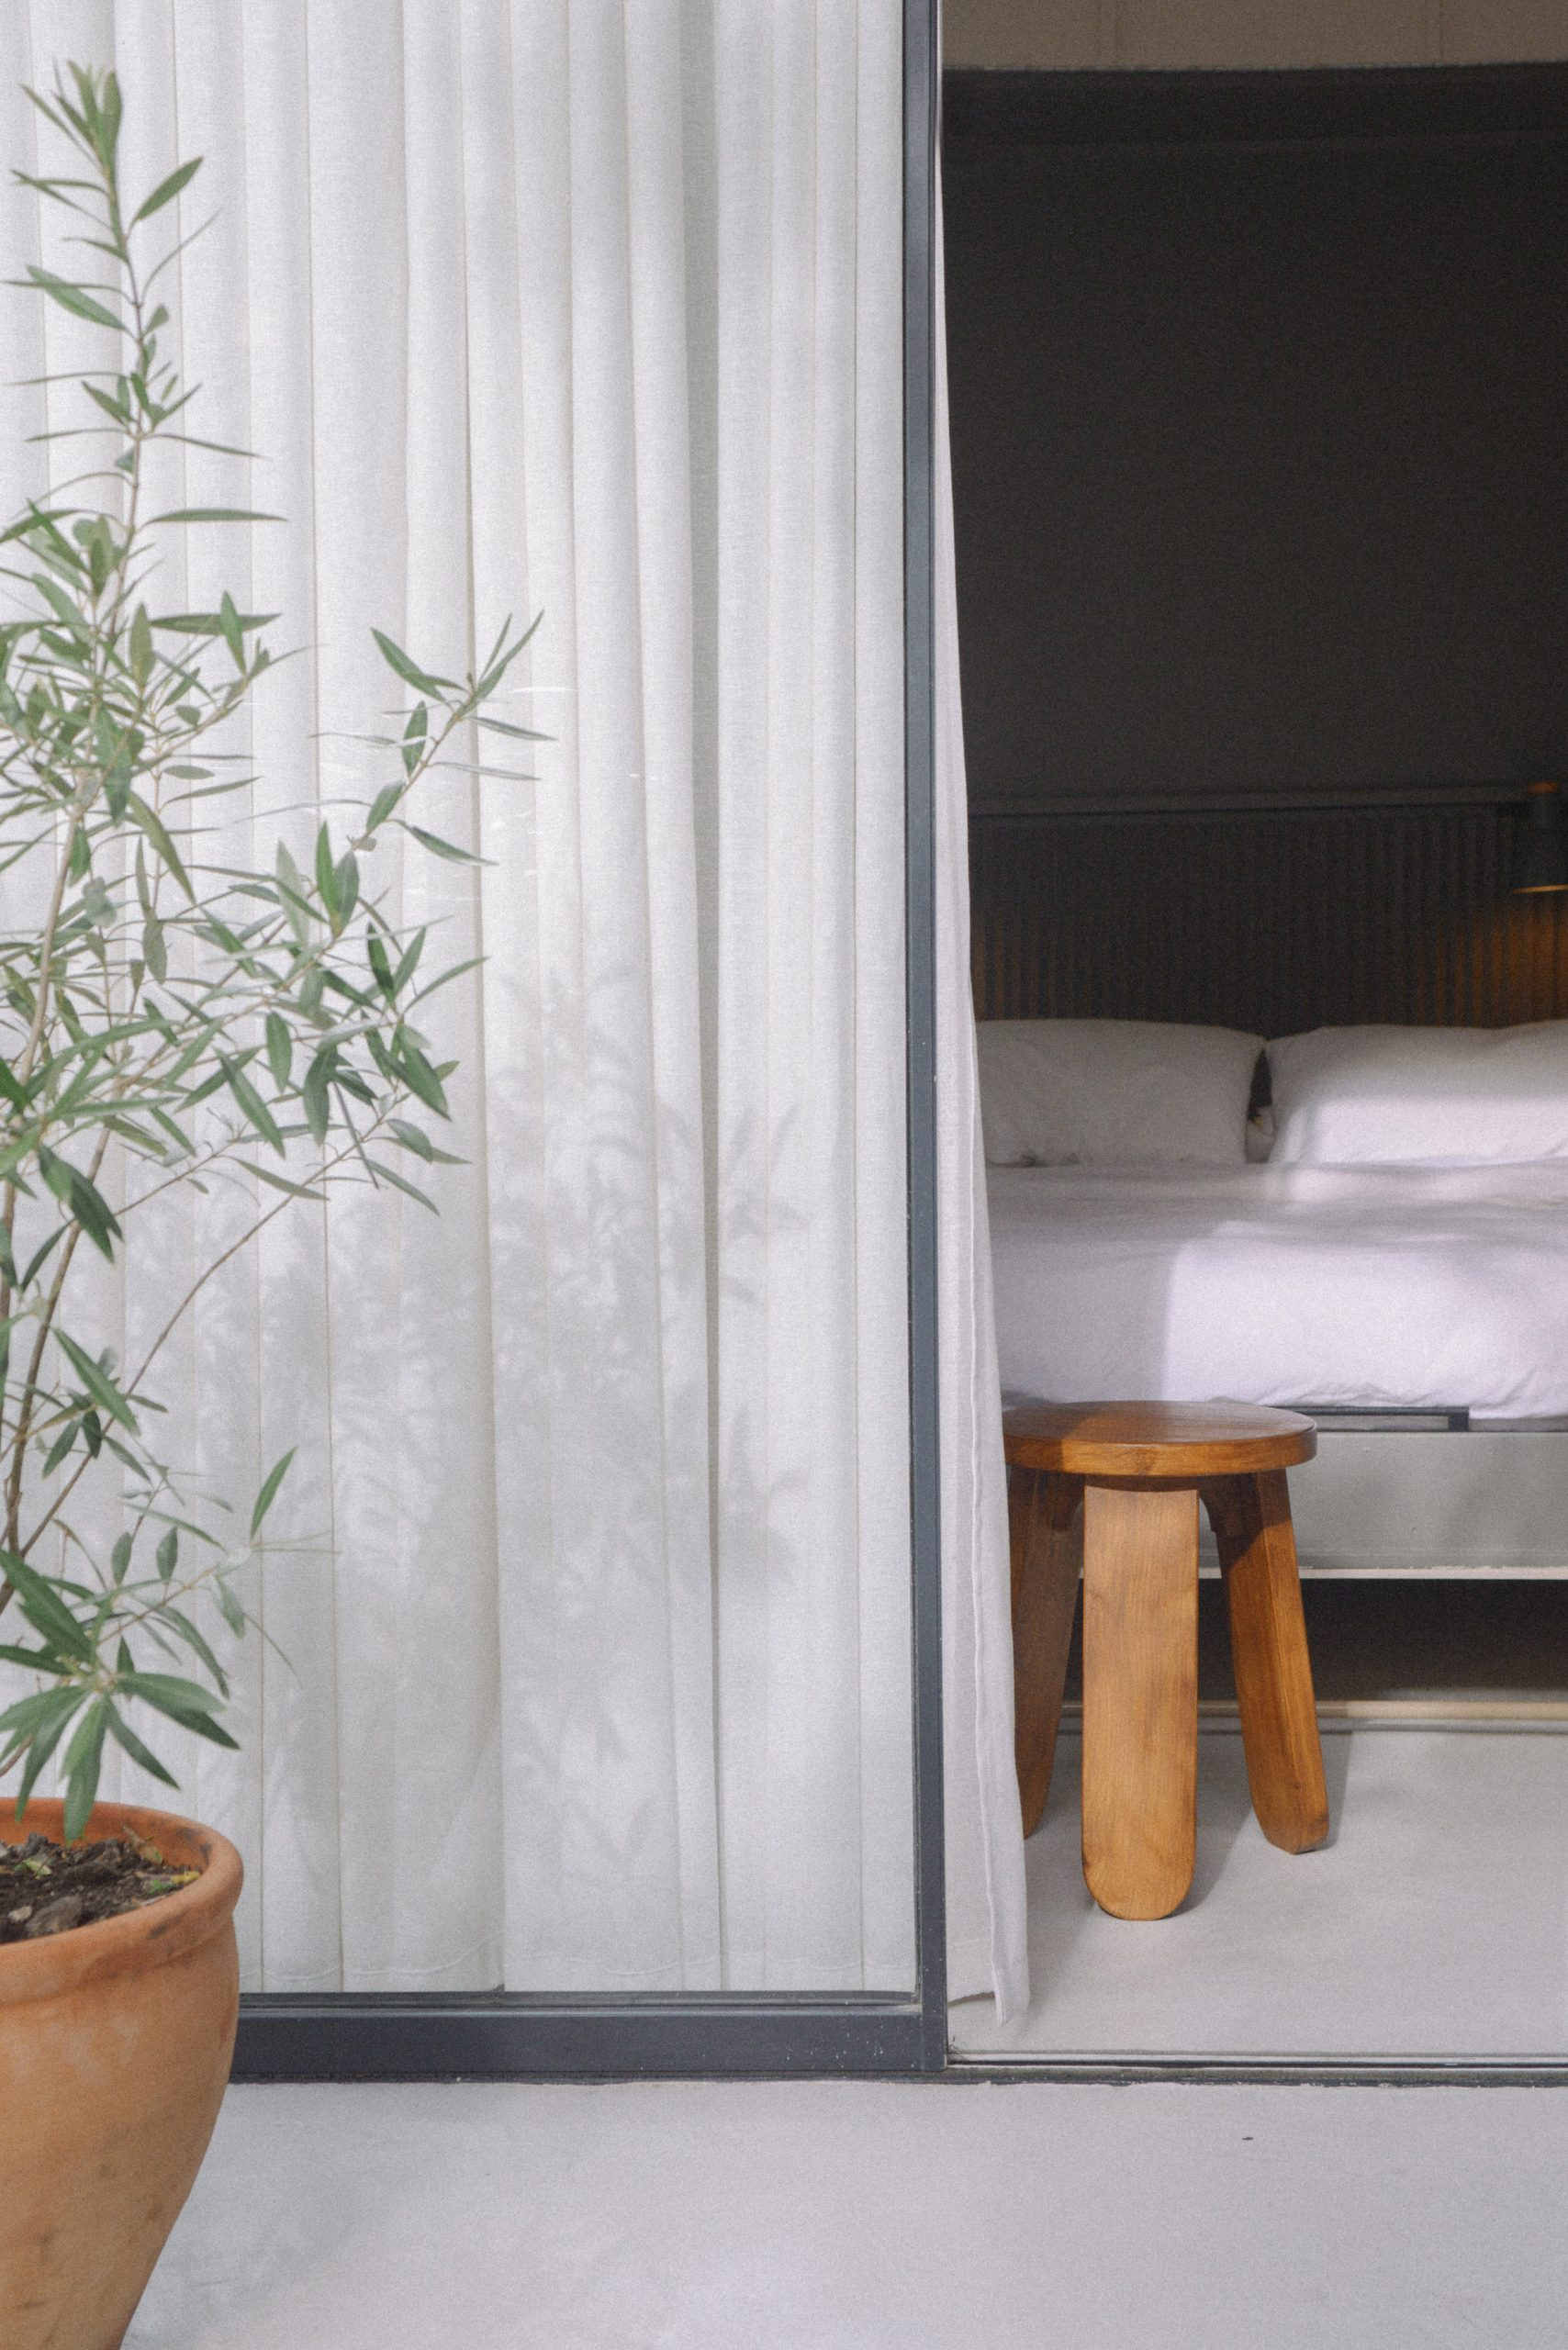 A bedroom with a glazed wall